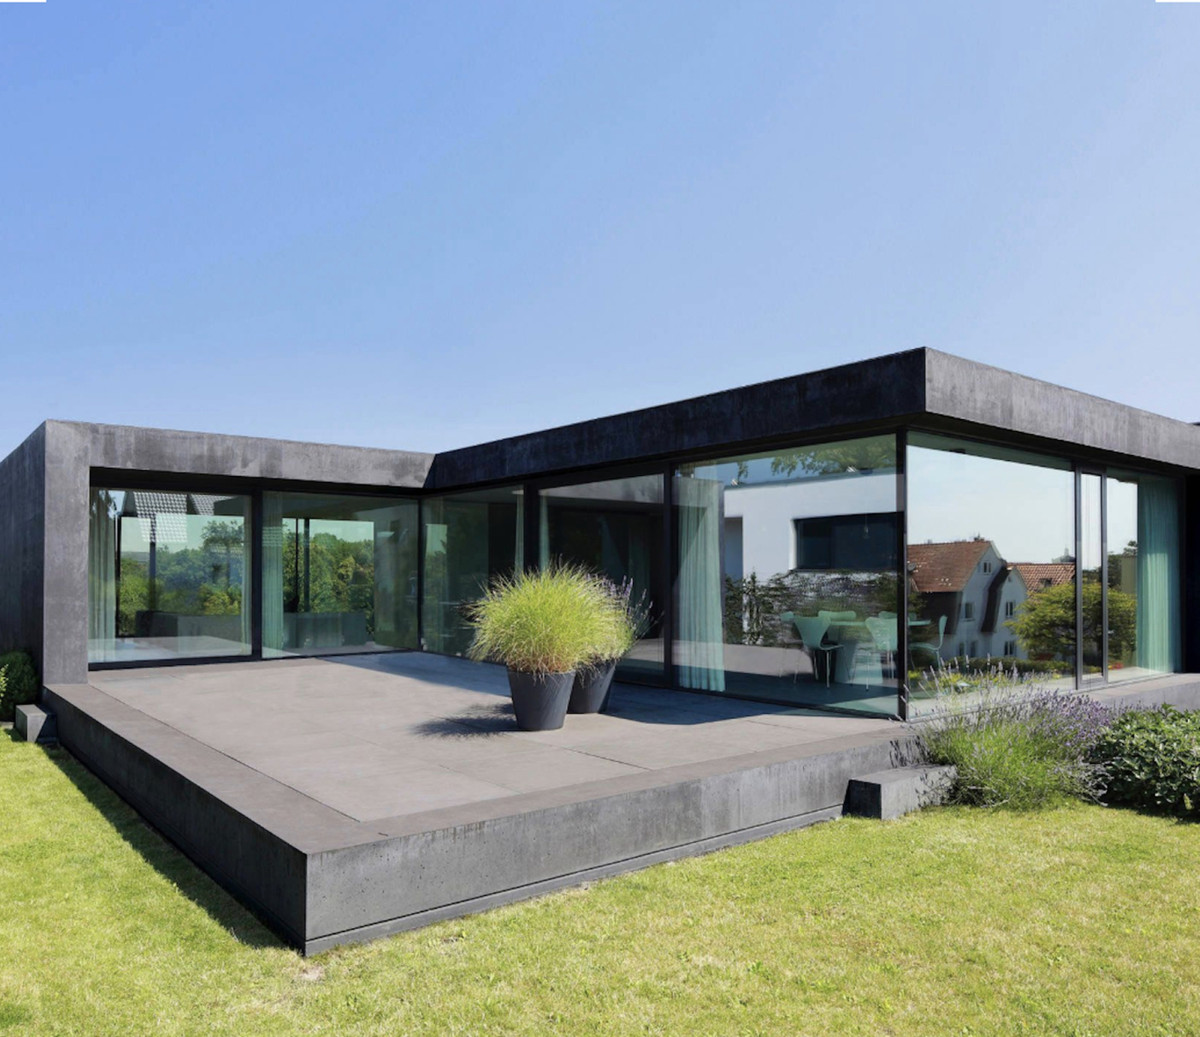 UNIQUE OPPORTUNITY TO BUY A CONTEMPORARY VILLA OFF-PLAN AT AN INCREDIBLE PRICE OF € 449,000 !!!!! Th, Spain